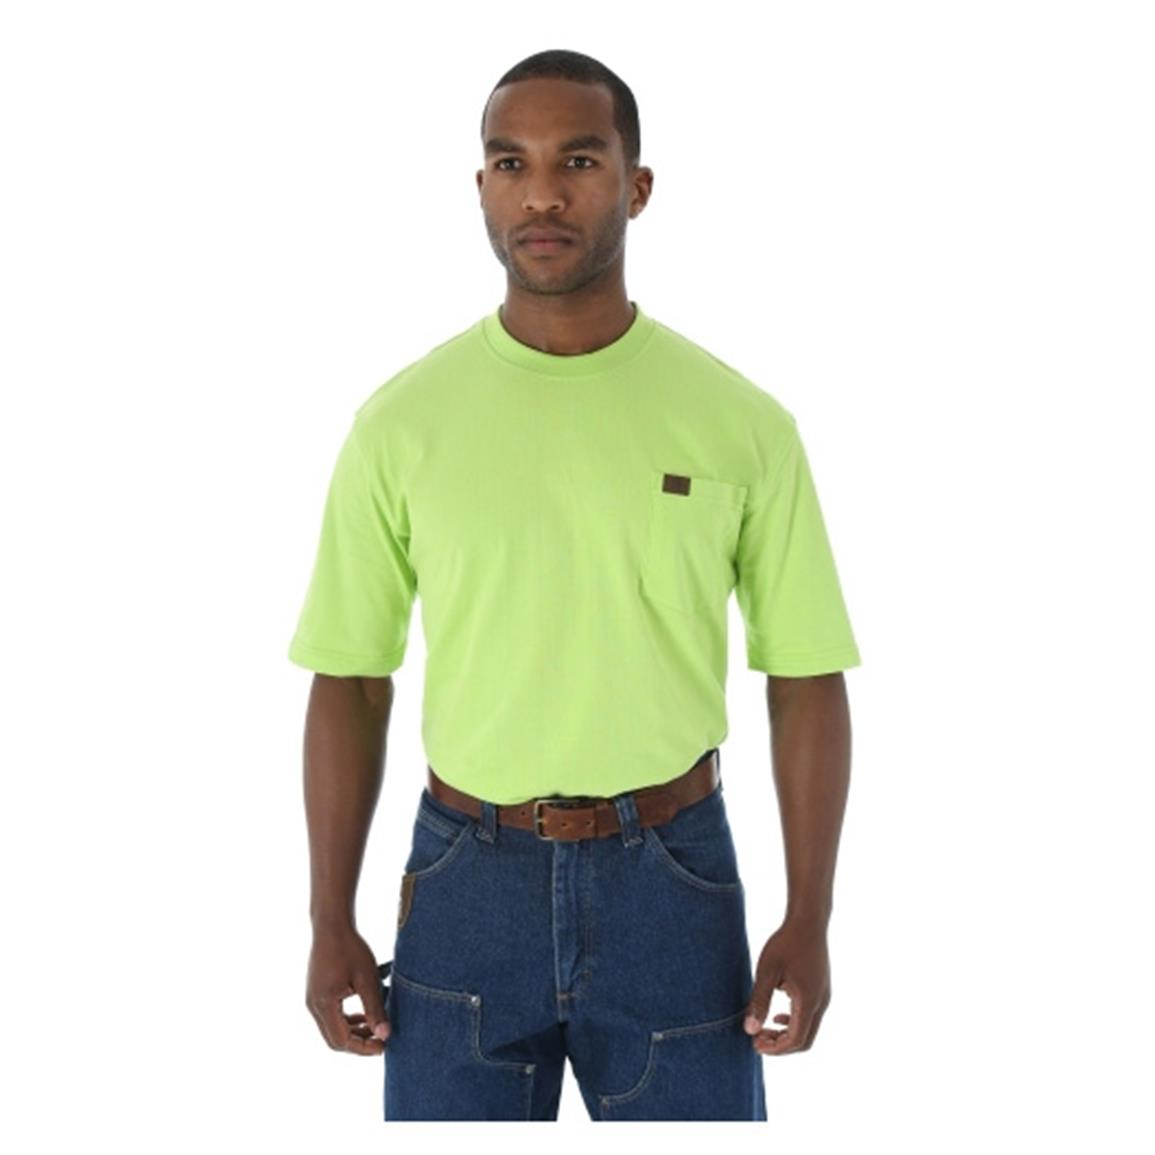 Wrangler RIGGS Workwear Men's Pocket Short Sleeve T-Shirt, Safety Green